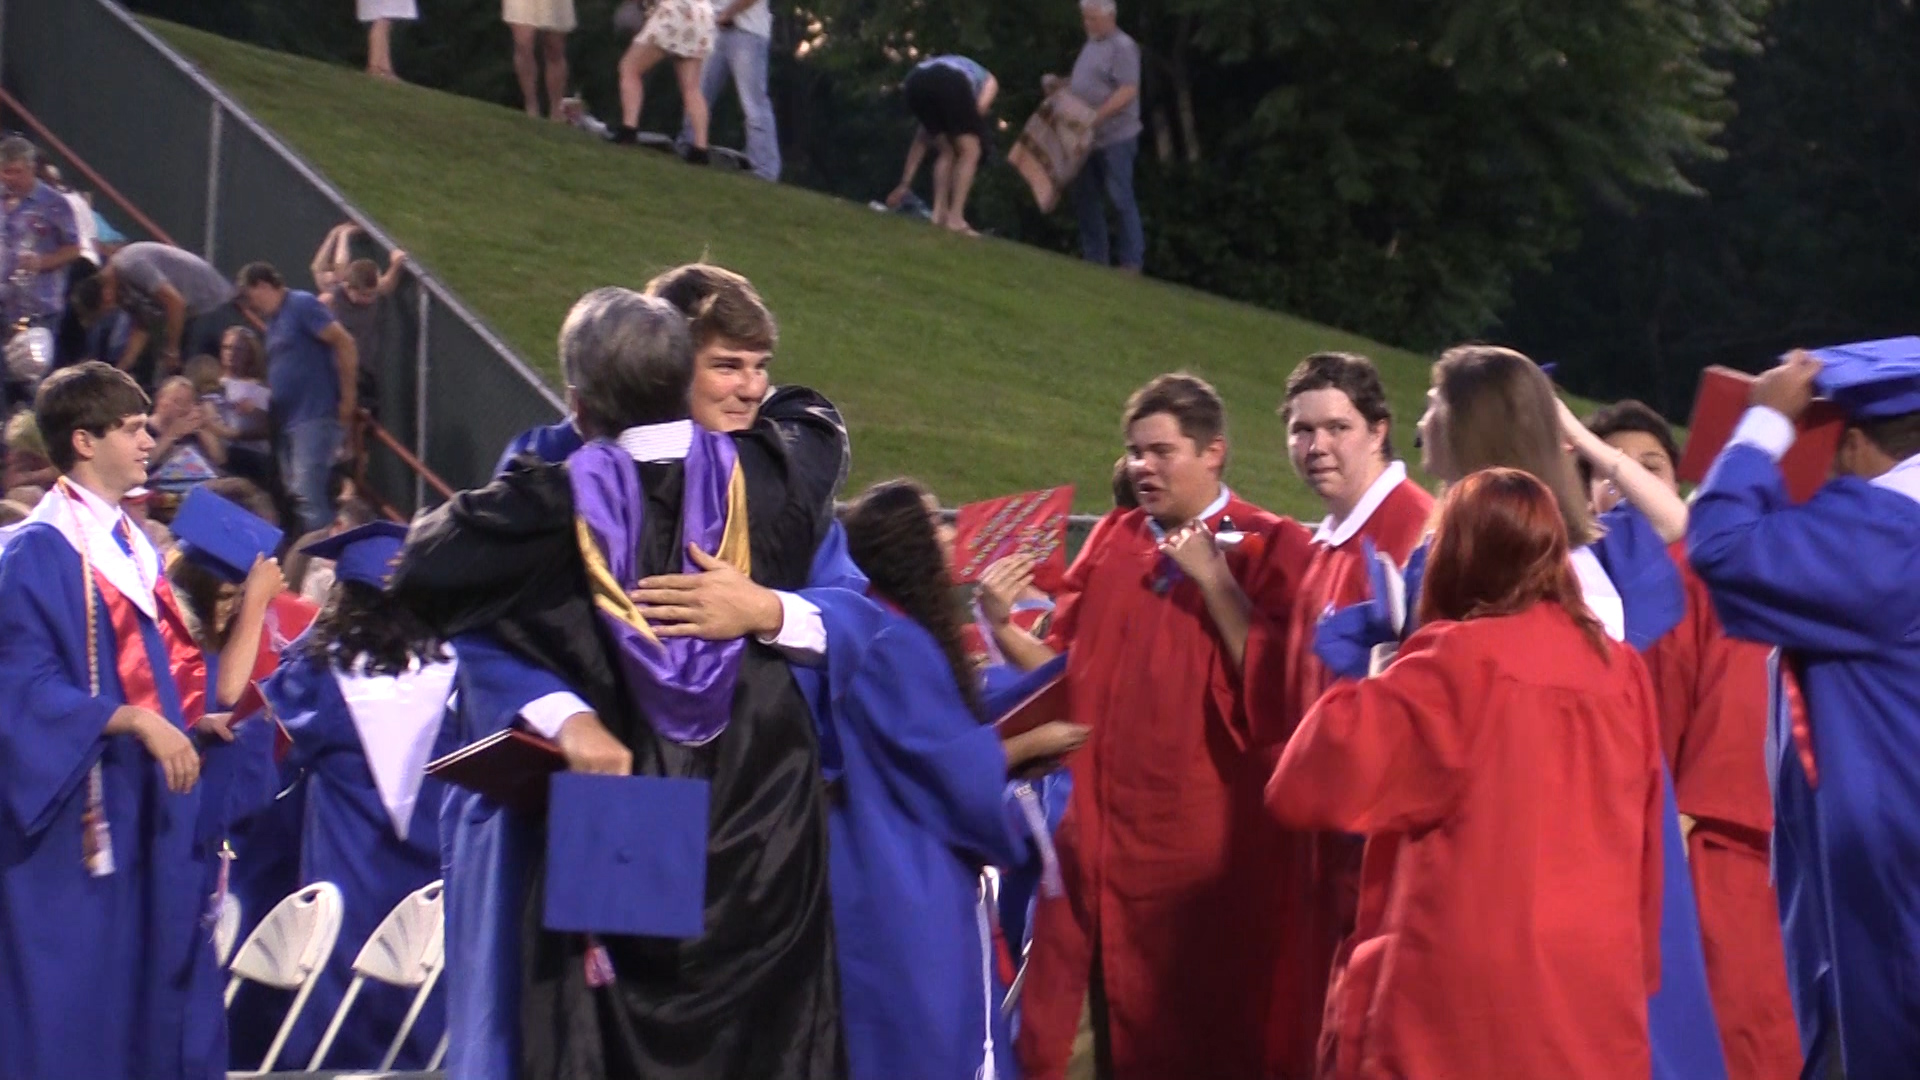 VIDEO - Warren County High School graduation 2017